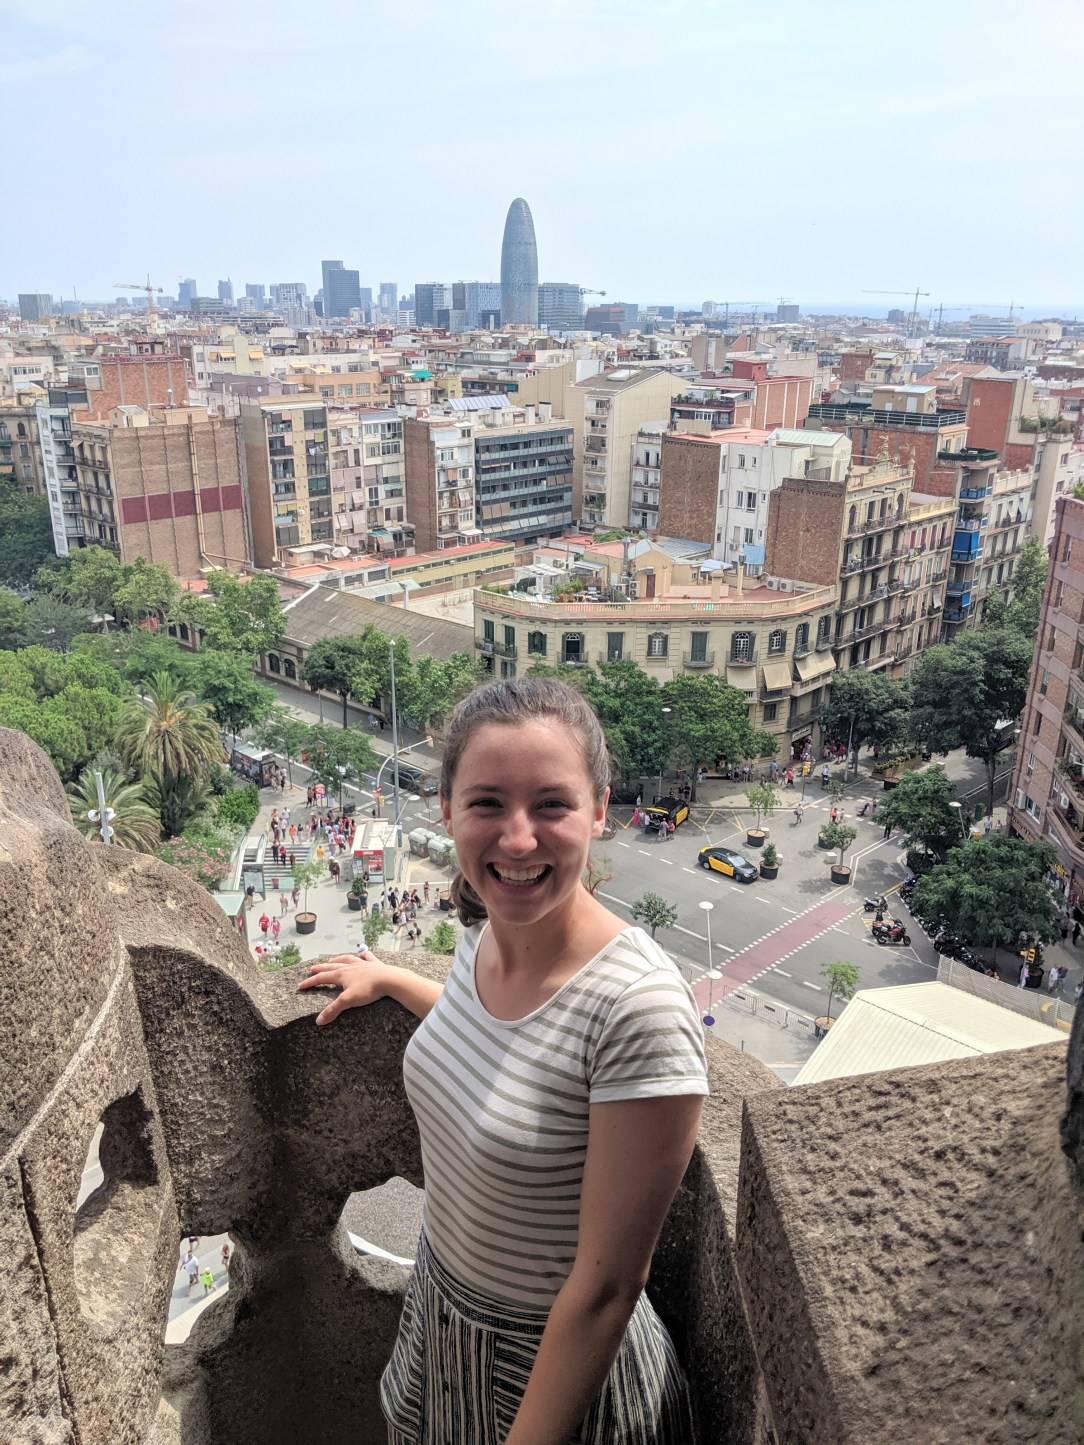 Sagrada familia, City view, Barcelona, Spanish style